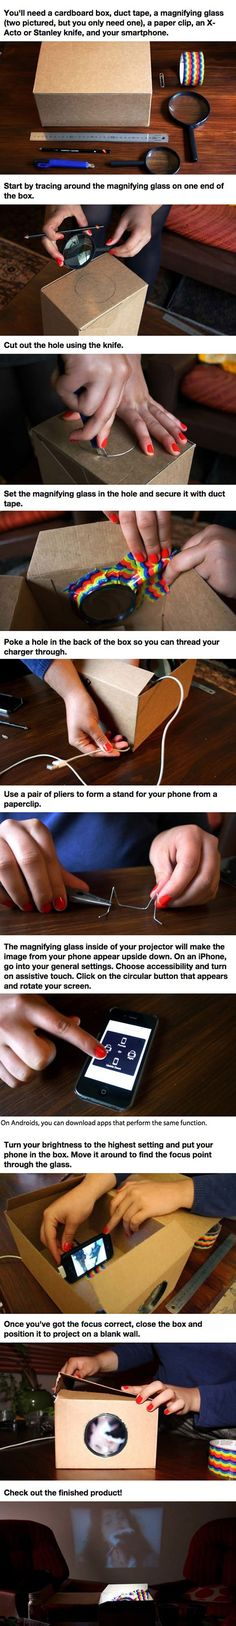 Here is how to make your own smartphone projector in a few easy steps.